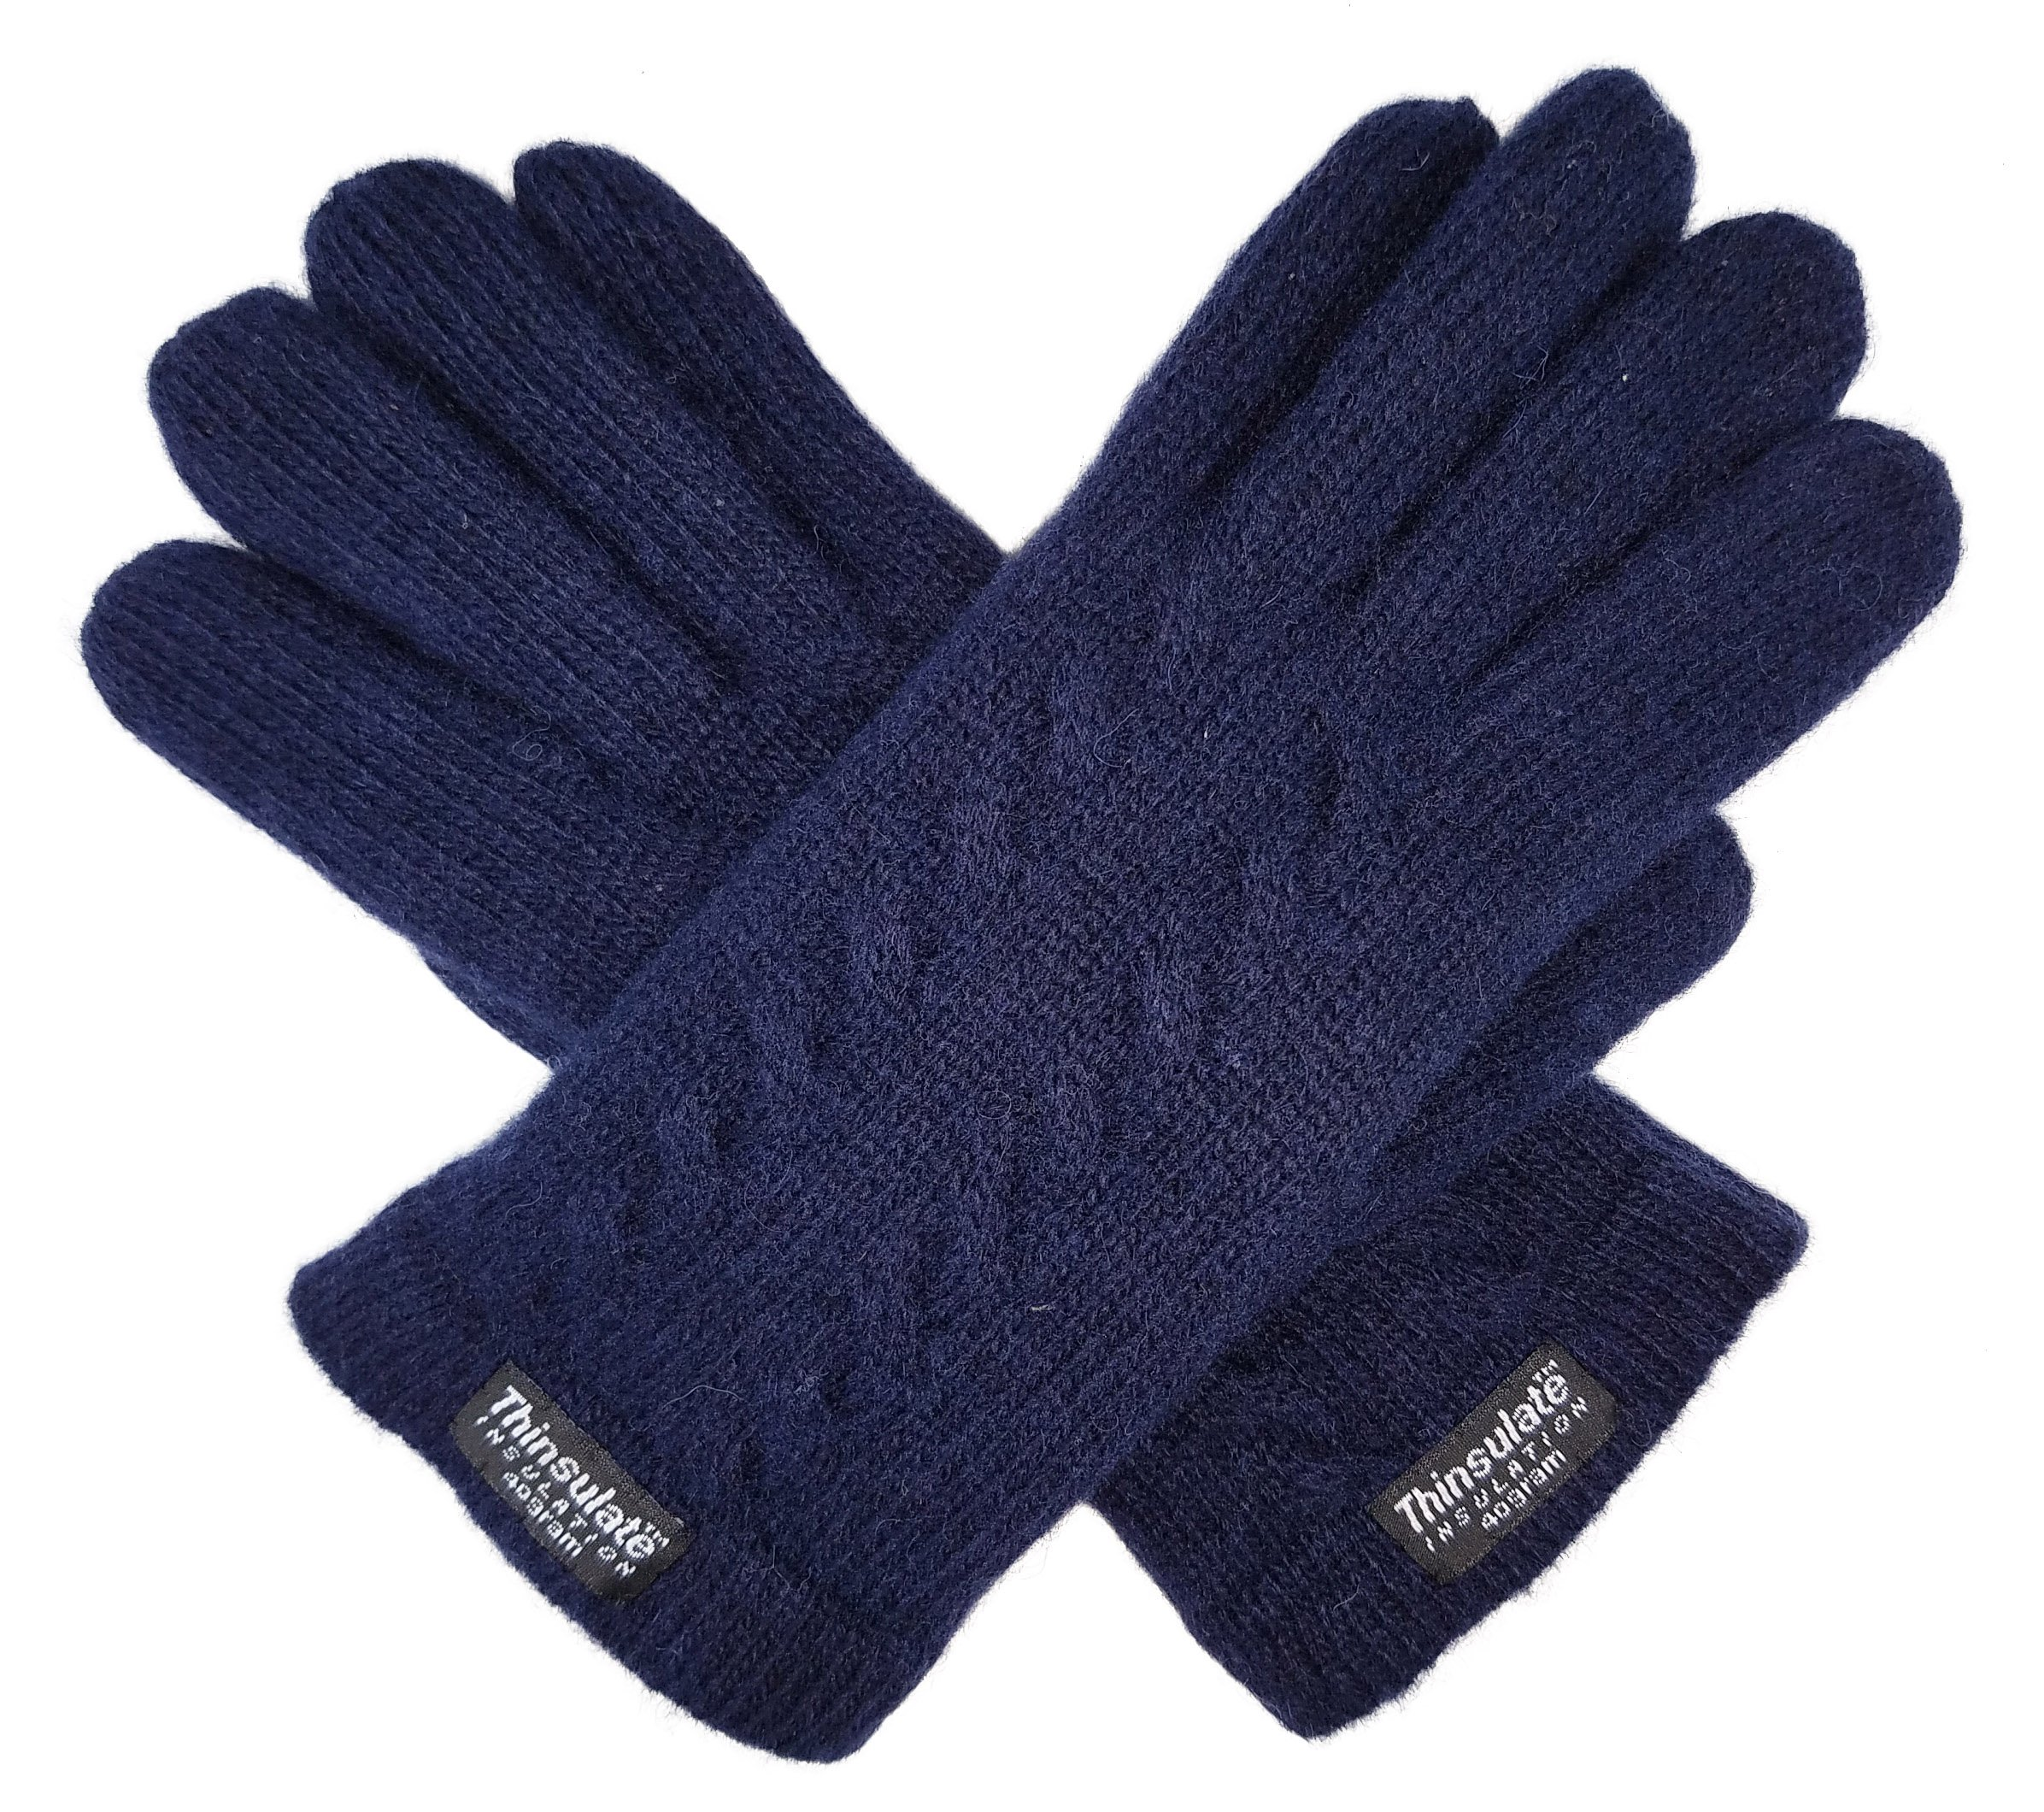 Bruceriver Ladie's Pure Wool Knit Gloves with Thinsulate Lining and Cable design Size XL (Navy)